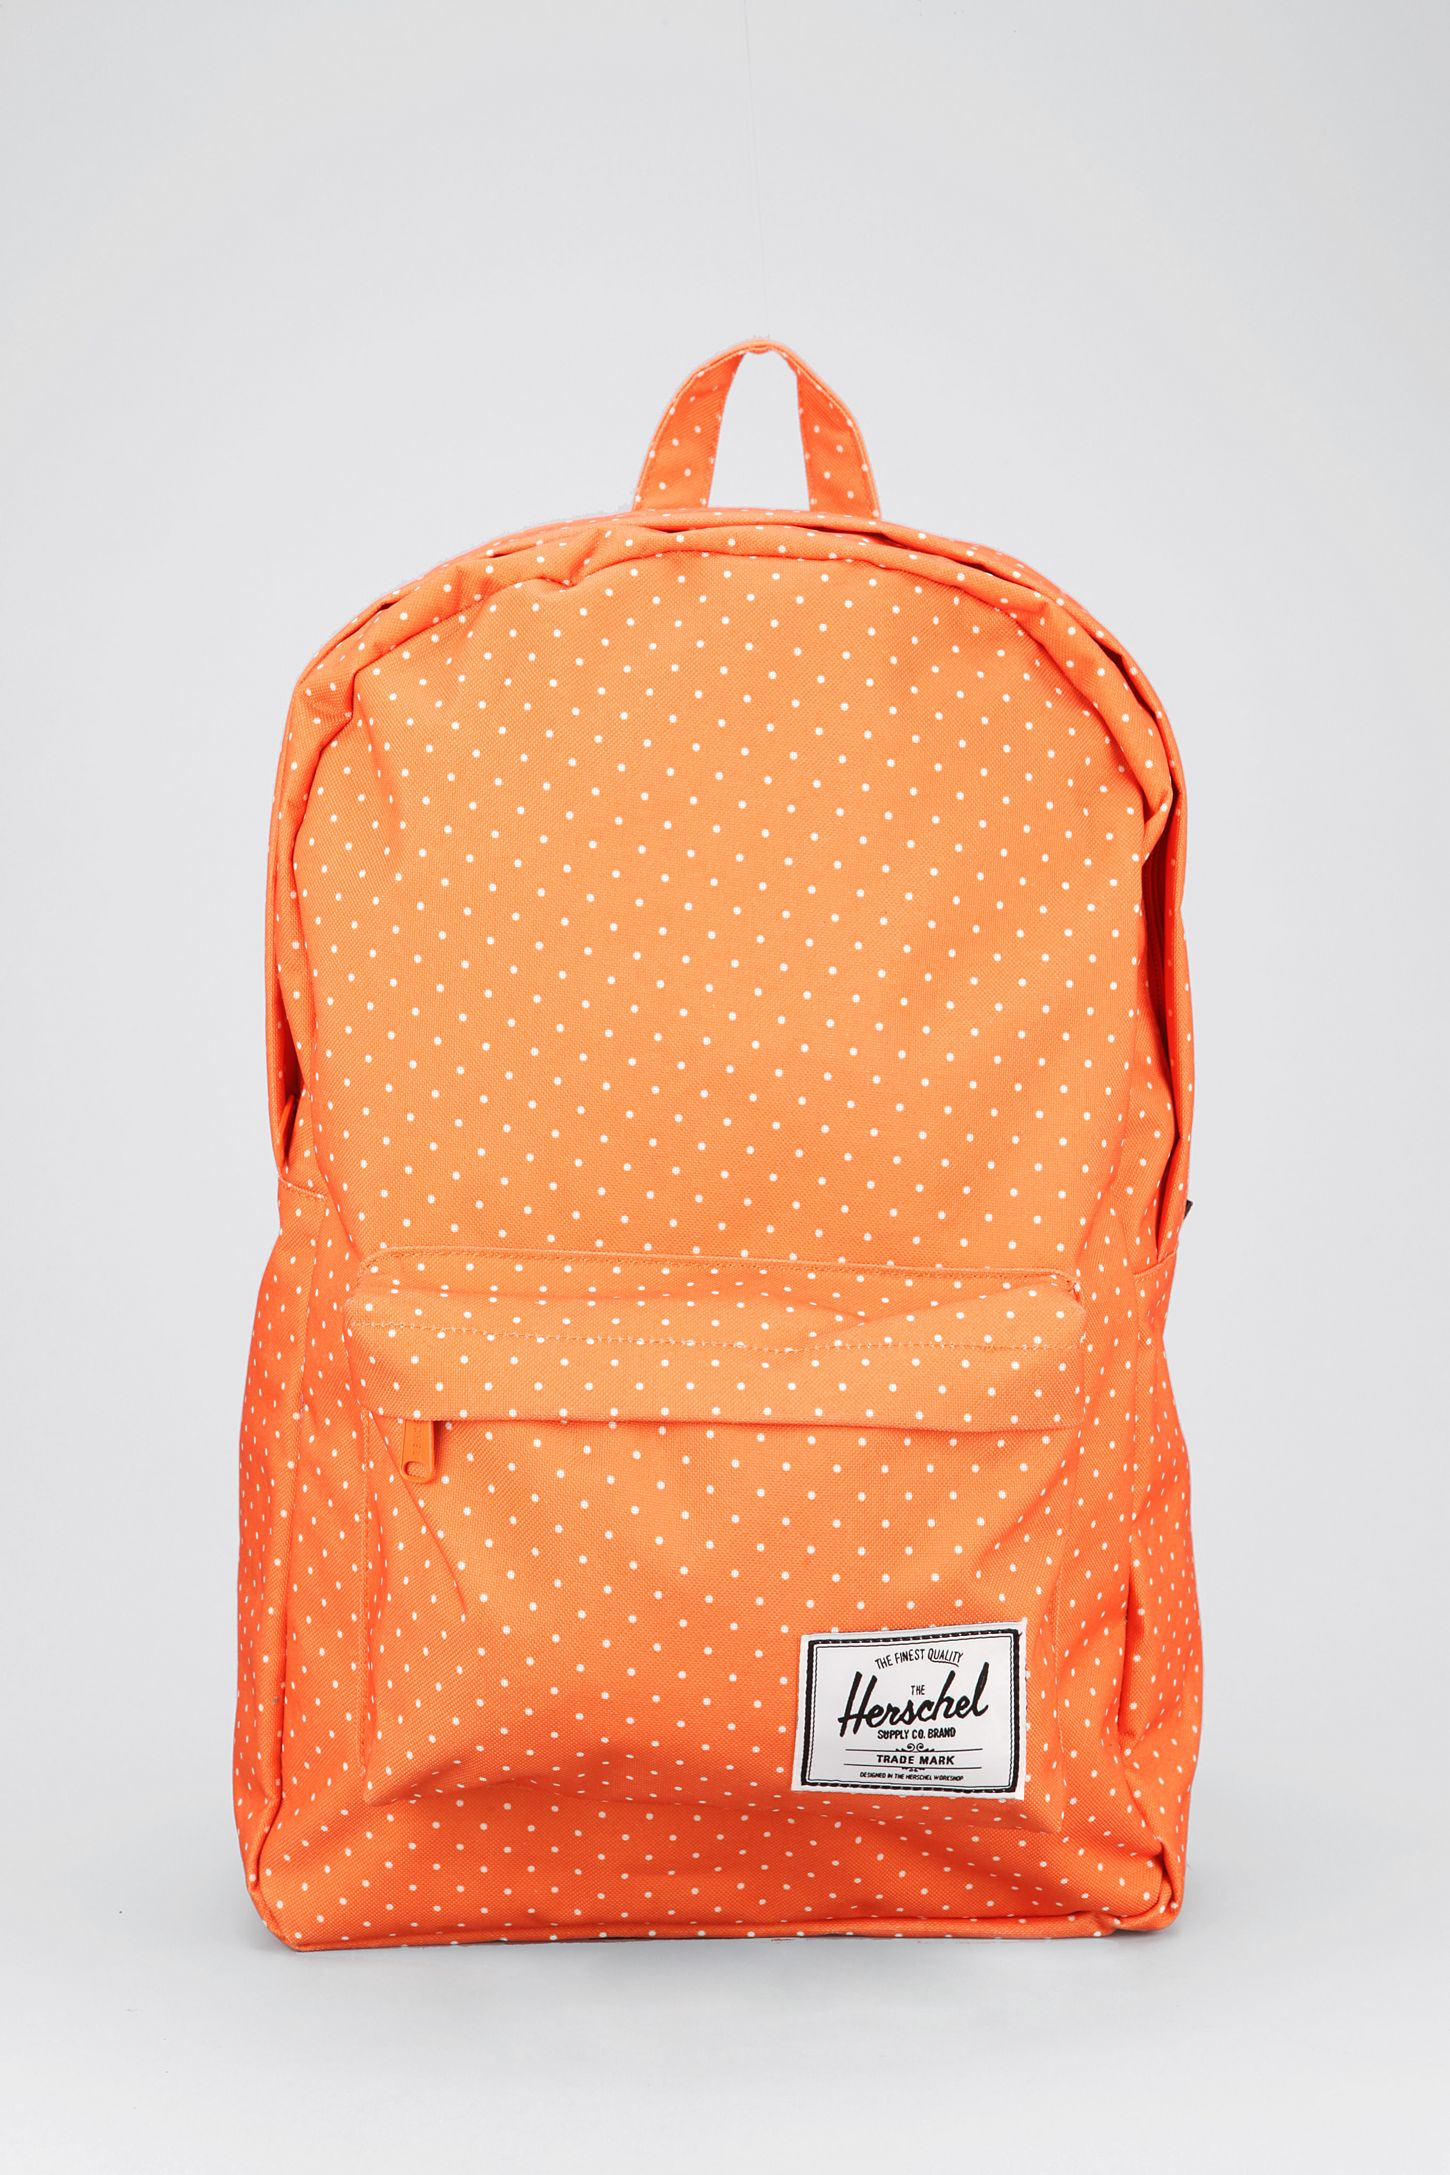 41dad50b20d4 Herschel Supply Co. Polka Dot Settlement Backpack. Tap image to zoom. Hover  to zoom. Double Tap to Zoom